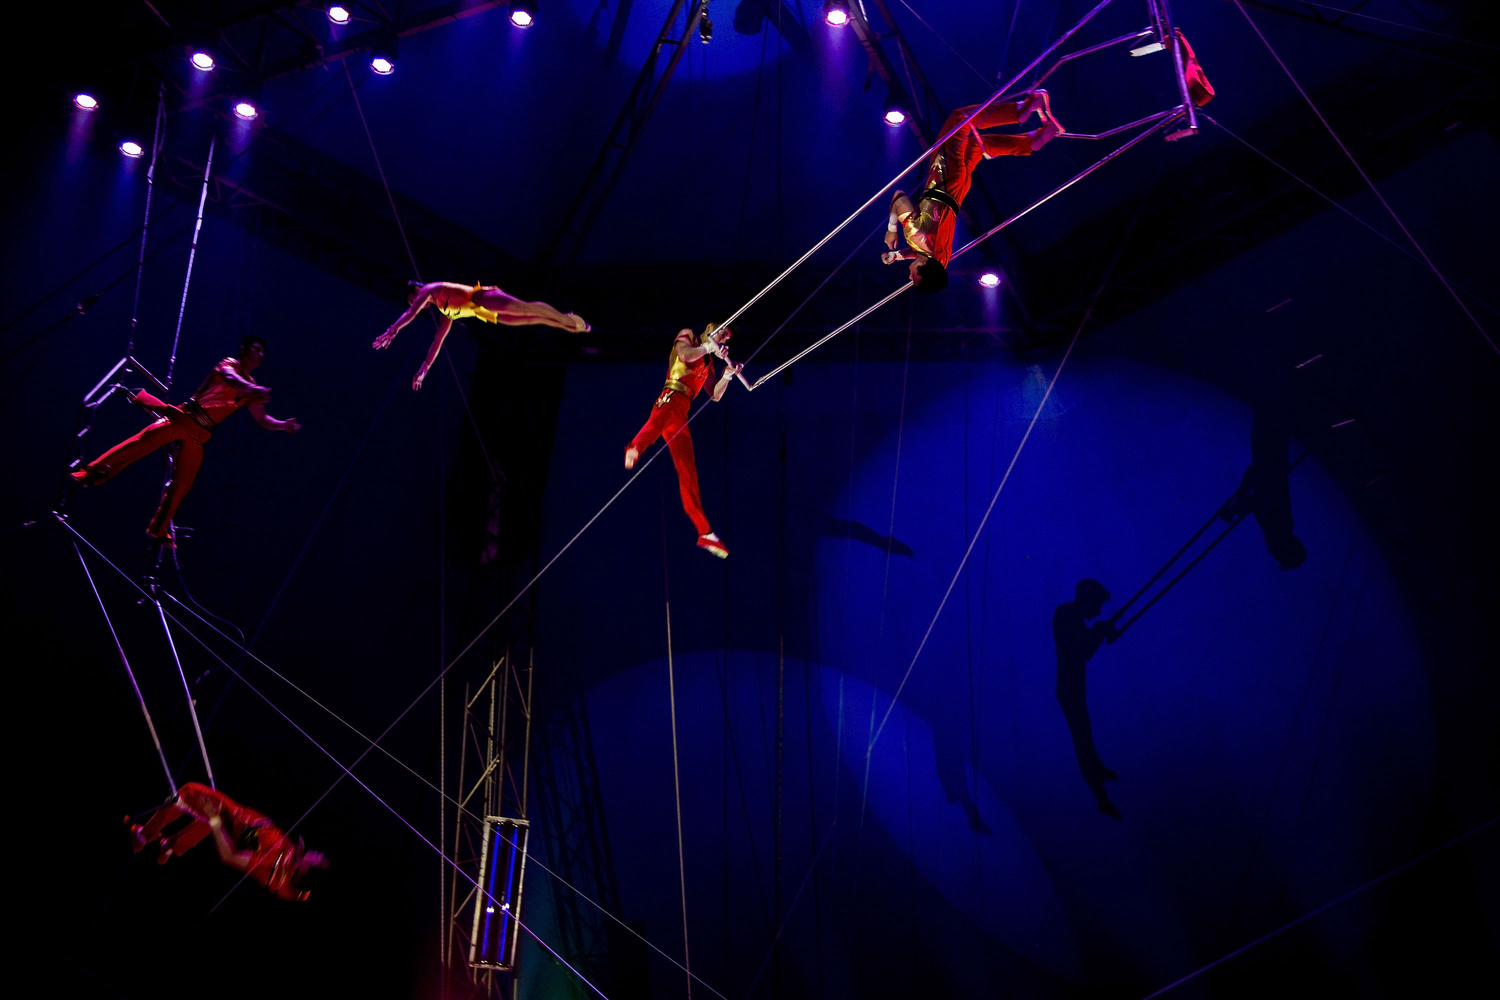 Trapeze   artist s of the  Pyongyang National Circus  perform their show at  Gran Circo Mundial  on November 28, 2015 in Madrid, Spain. On the world of  flying  trapeze art, this 10-artists company commits on their contract a male-four-mortal-jump (performed by Kim Chol Guk) and a female-three one (performed by Hwang Kum Hui).  Gran Circo Mundial  is a 40 years-old Spanish  circus  where  famil y lifes and stories have mixed together across the time. From the  trapeze  artists of the  Pyongyang National Circus  to the  Rampin  family descendants,  clown s,  magician s or aerial  permormer s share the  stage  and part of their private lifes. Their show was running inMadrid in Autumn 2015.